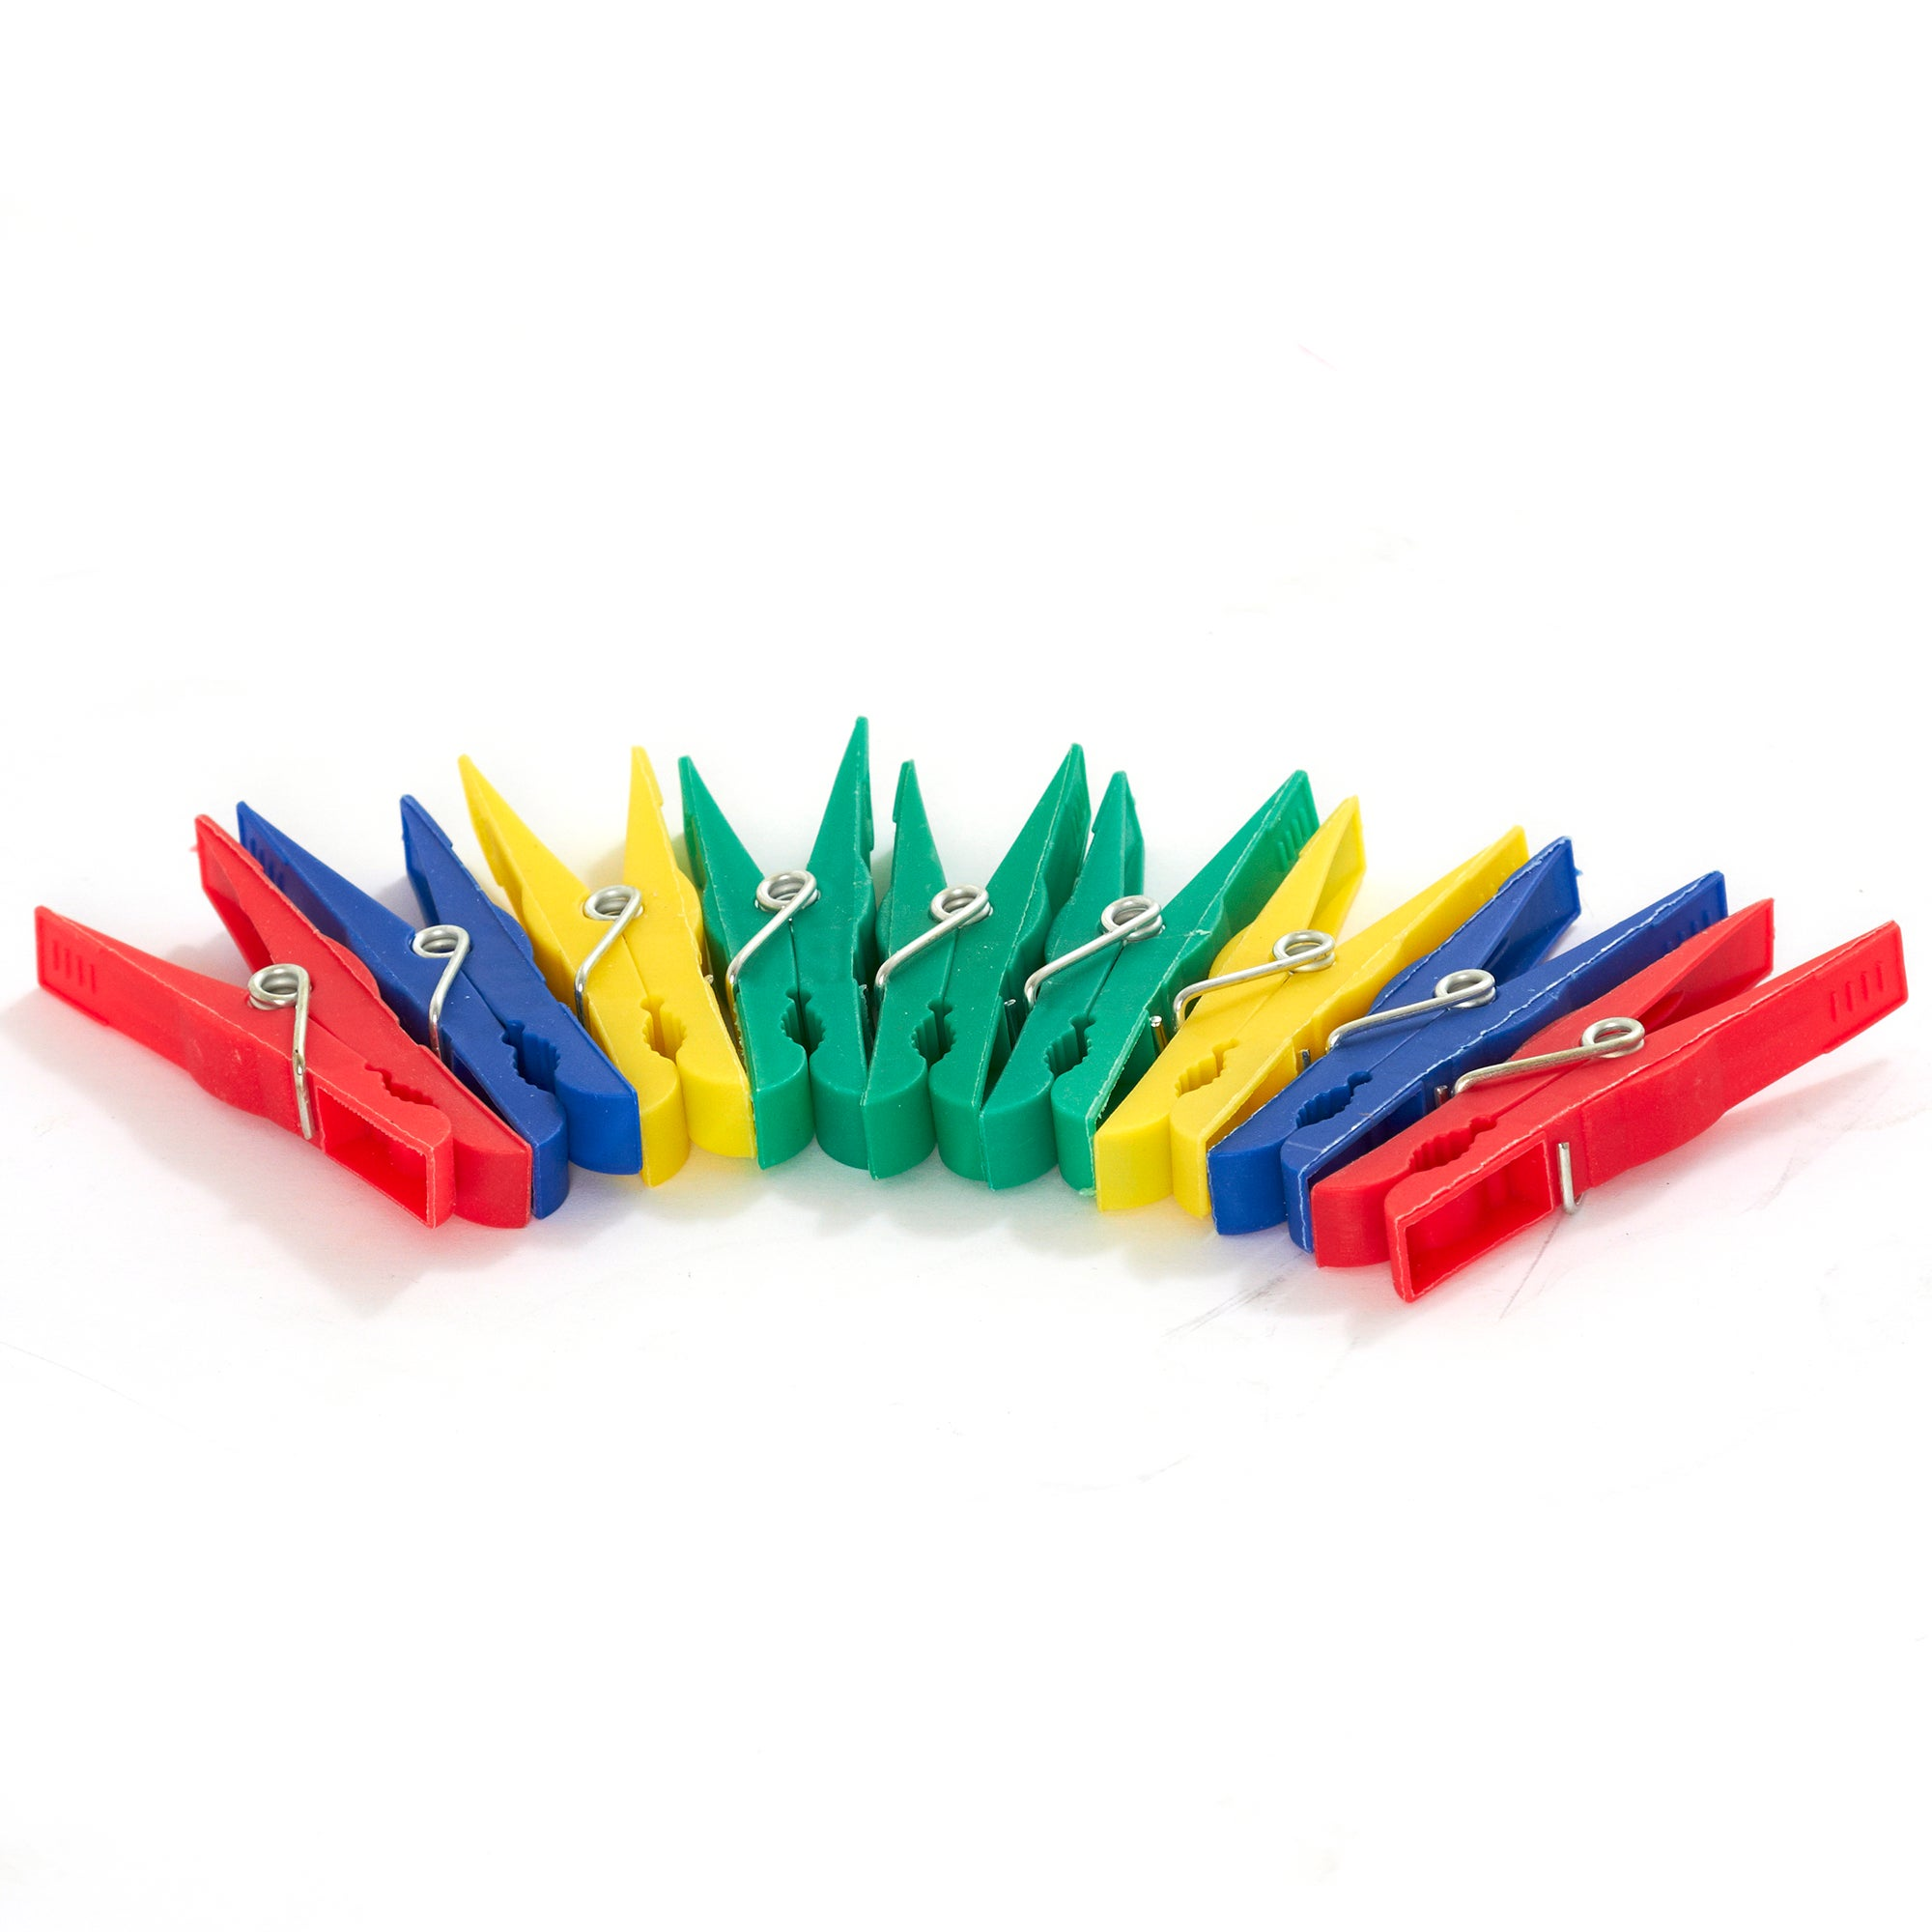 Simply Heavy Duty Pegs